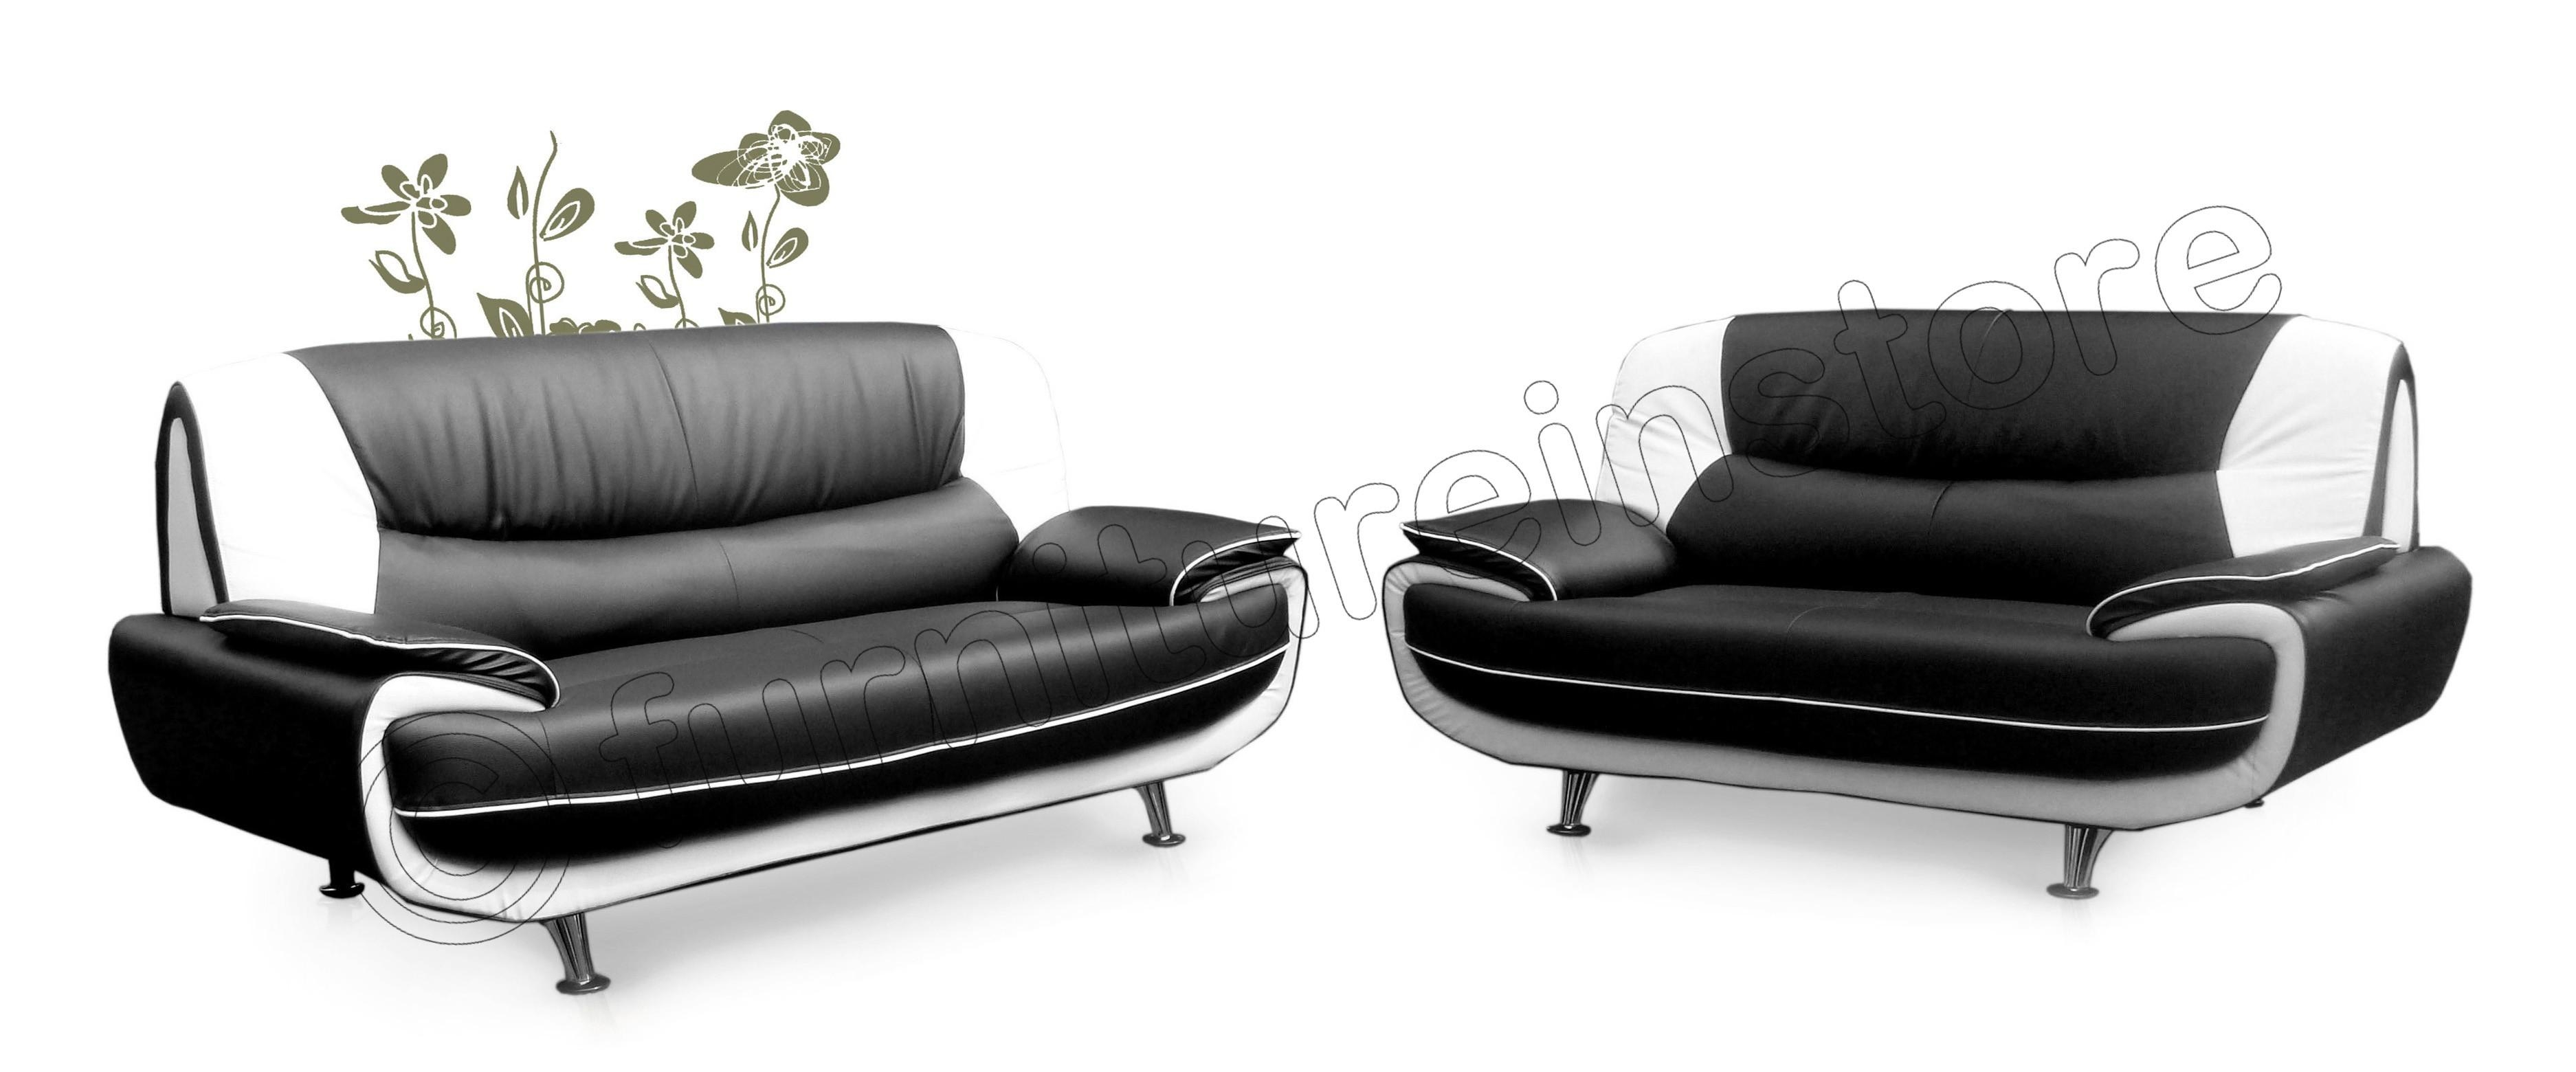 Sofas Center : 0343330 Pe535664 S5 Jpg Black And White Sofa With Regard To Black And White Sofas (View 8 of 20)